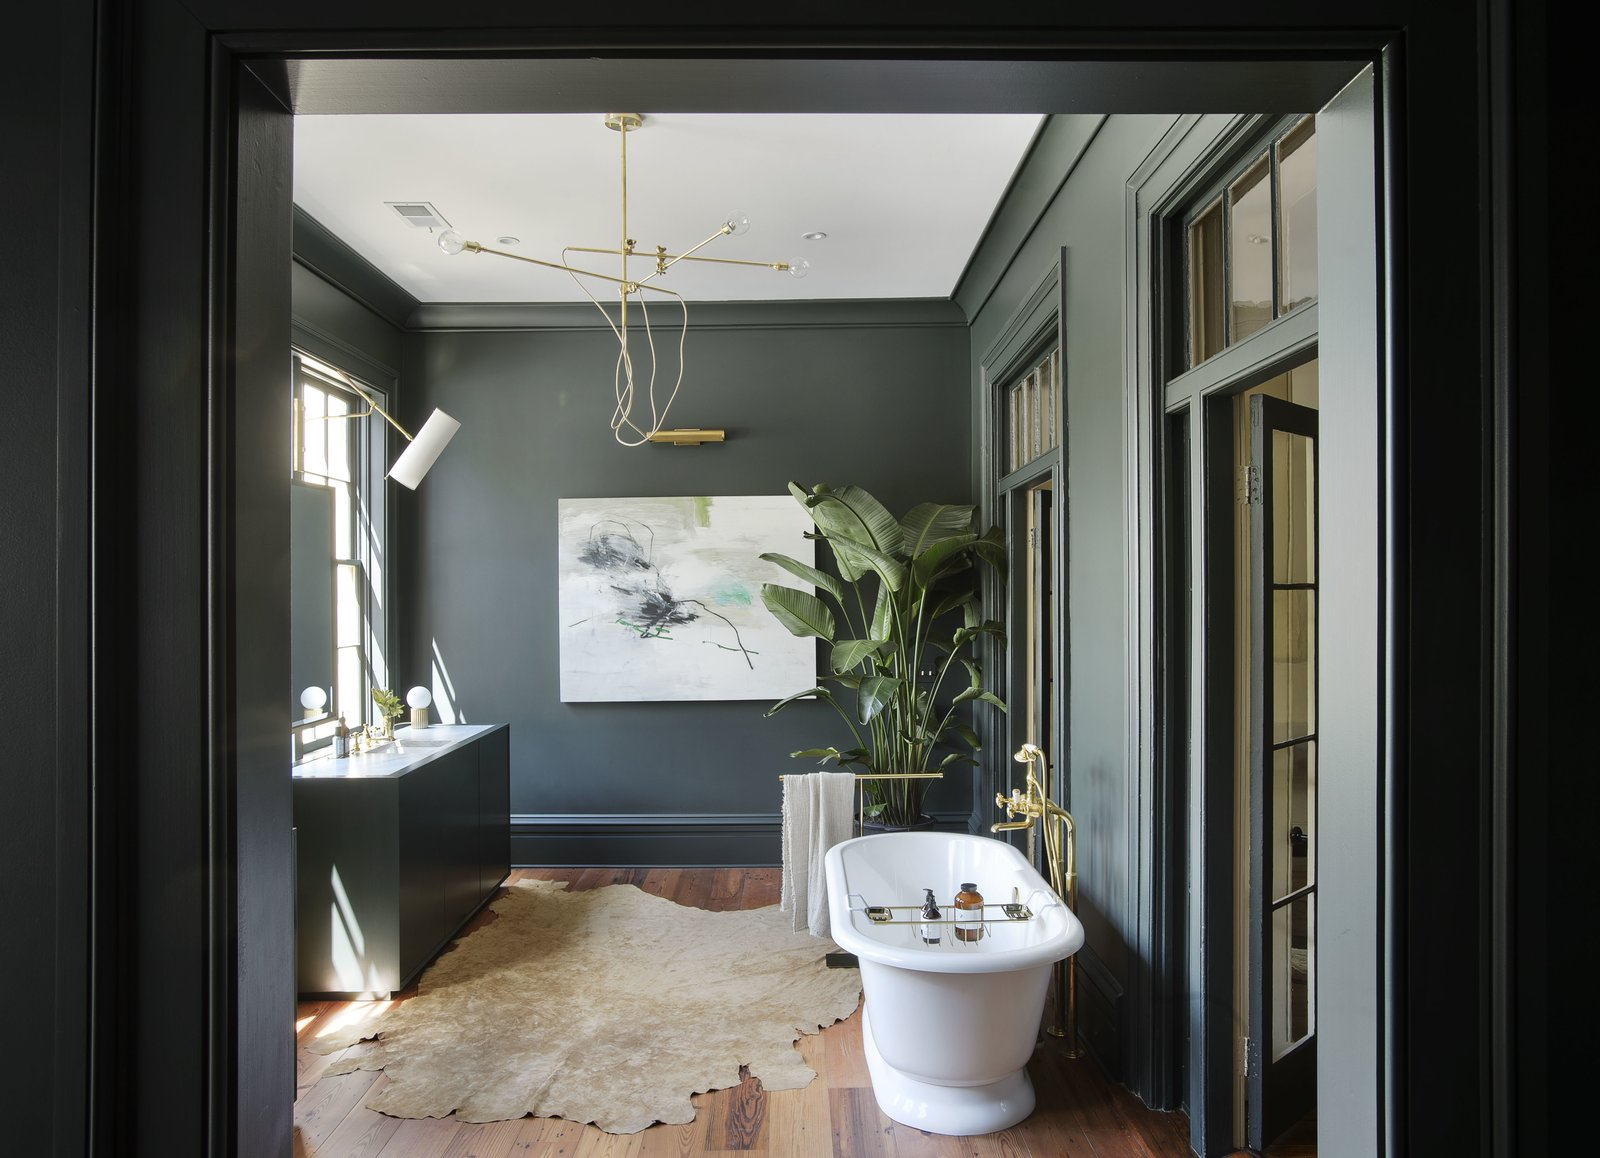 9 modern bathroom ideas that go off the beaten path dwell - Beautiful modern bathroom designs ...